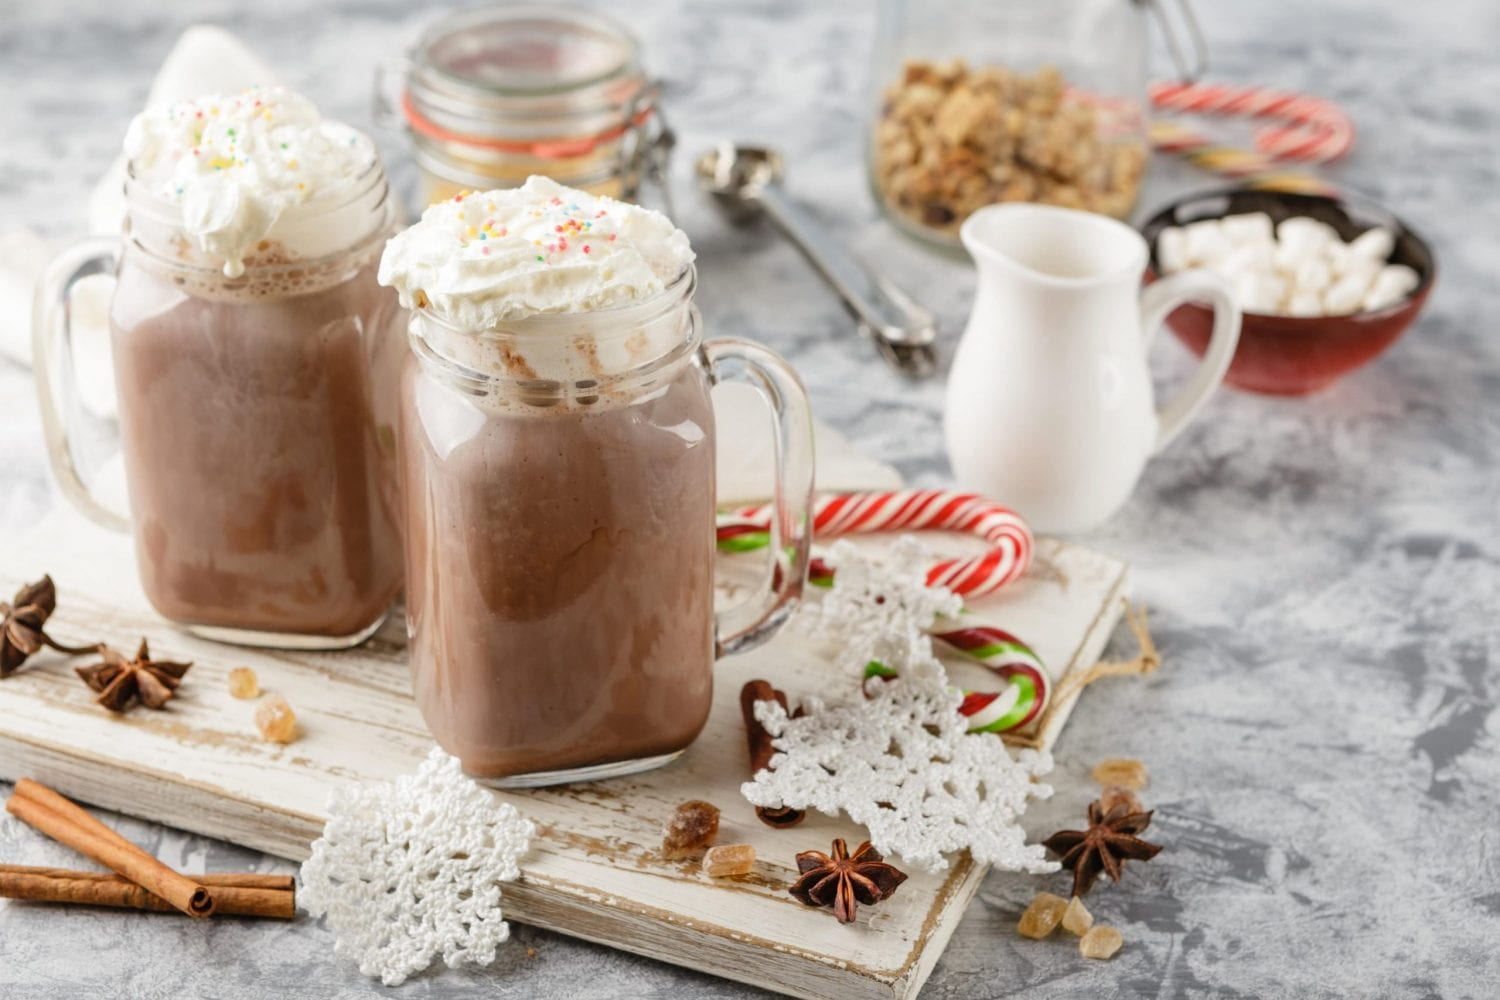 Two jars with weed hot chocolate in them on a wooden cutting board. Lots of cutlery and cups in the background